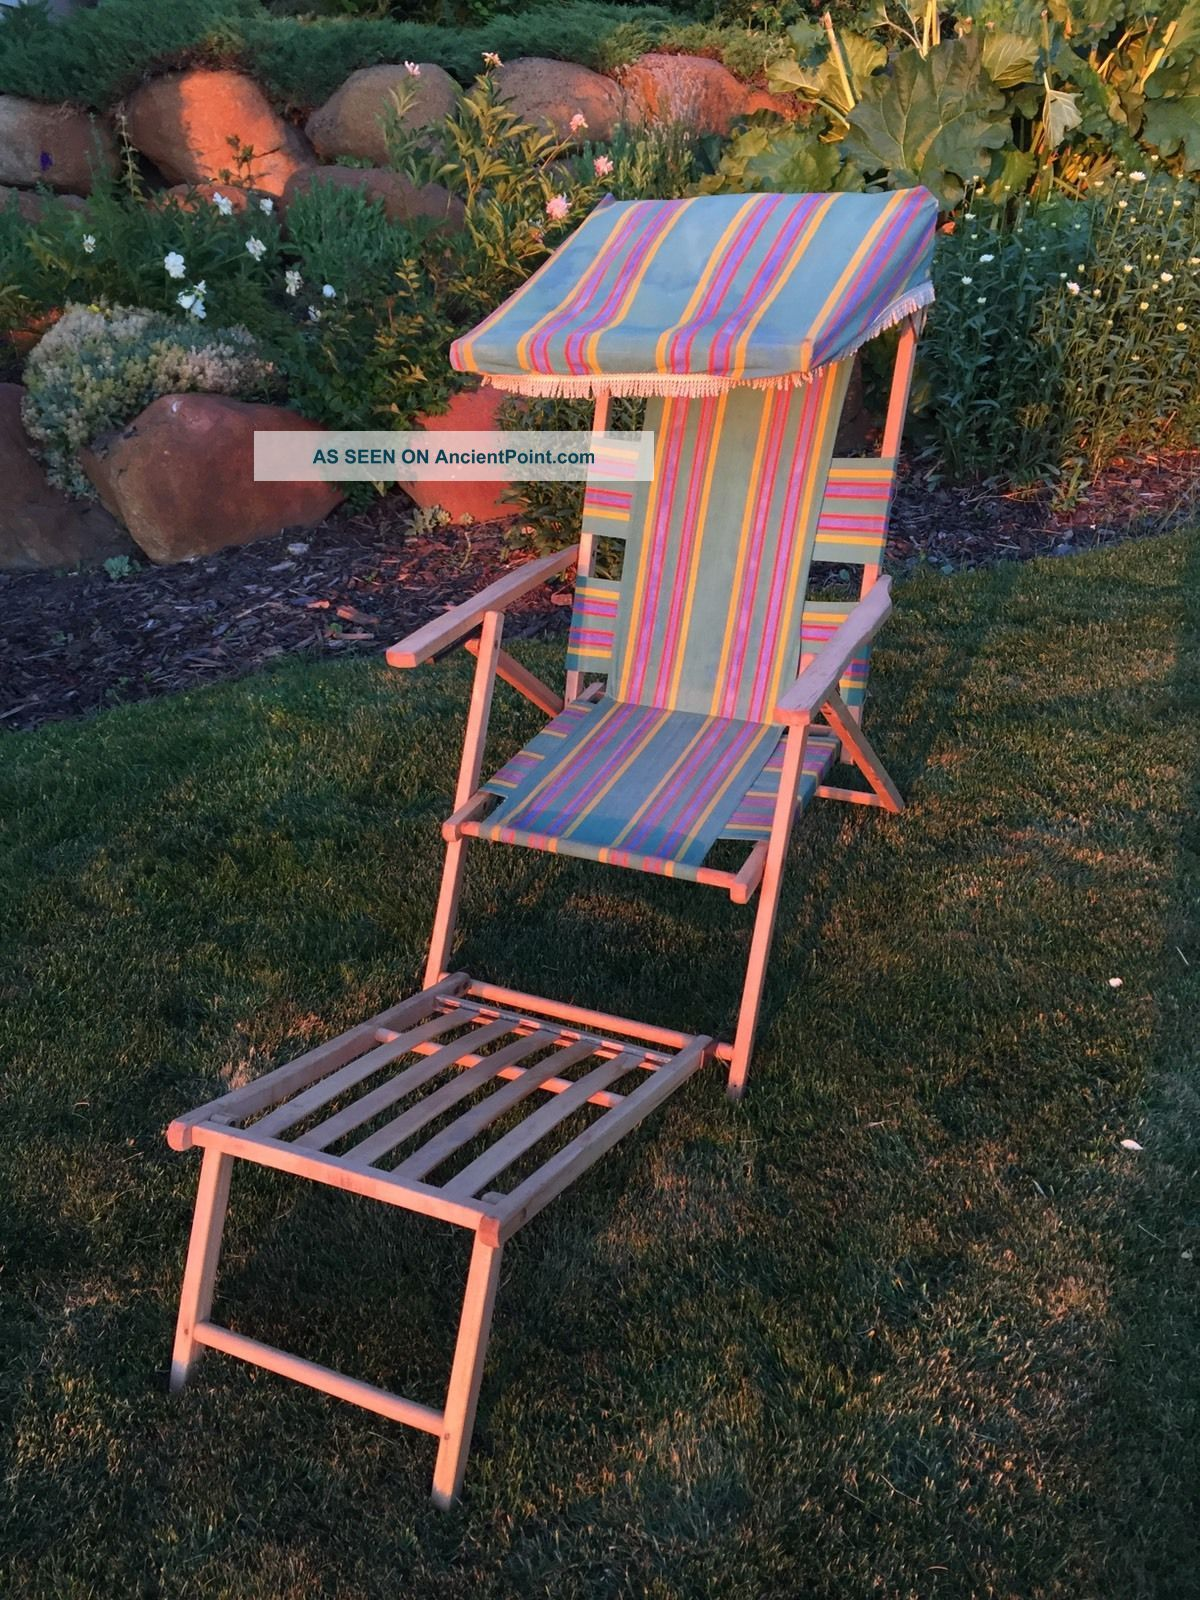 Vintage Fabric & Wood Folding Ship Deck Lawn Chair 100 1940 ' S 2 1900-1950 photo